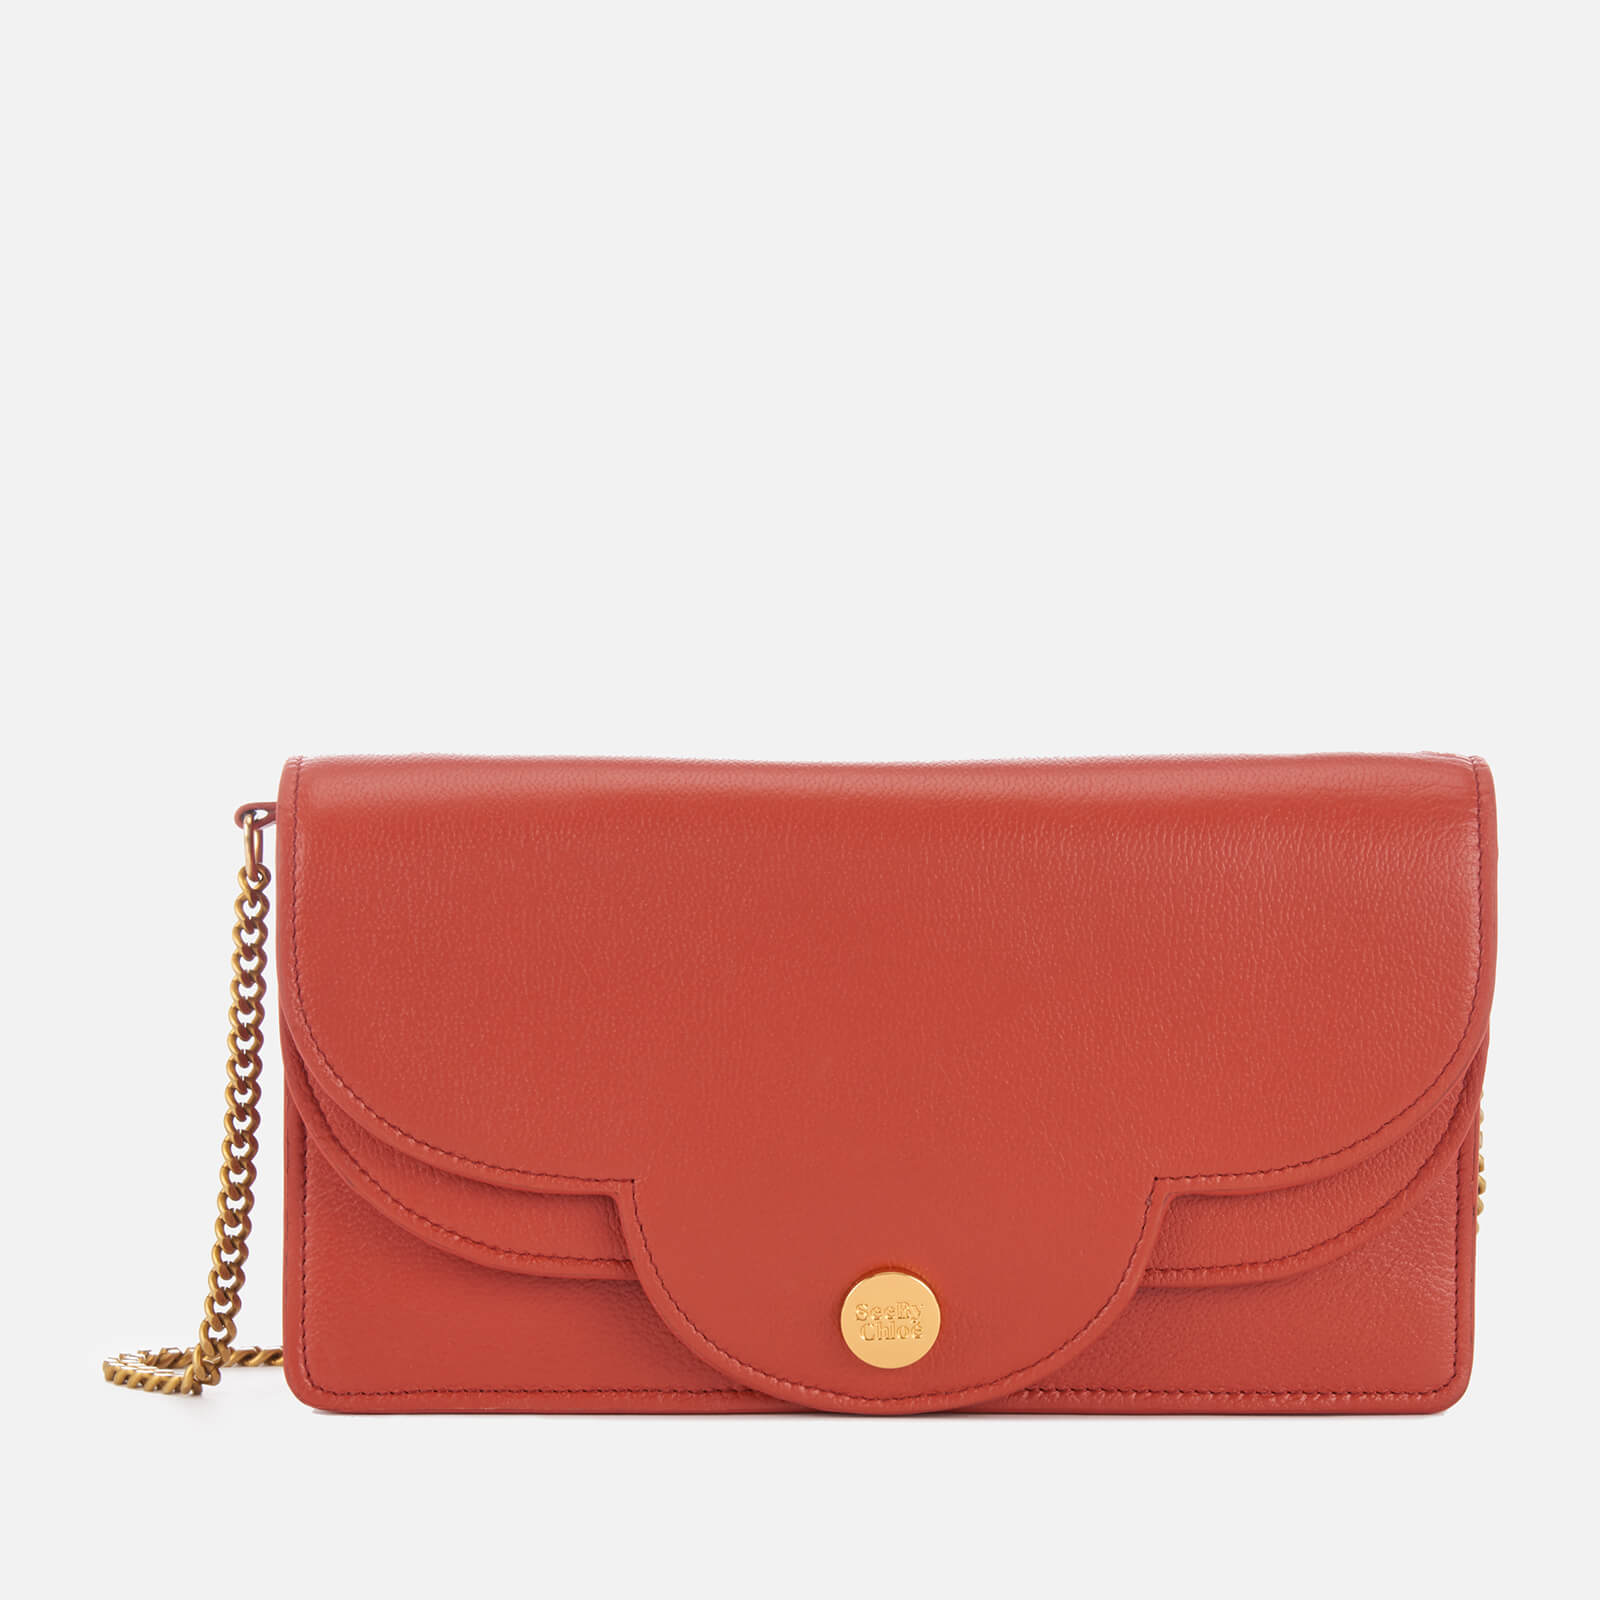 9134a12c5f See By Chloé Women's Polina Chain Bag - Red Sand